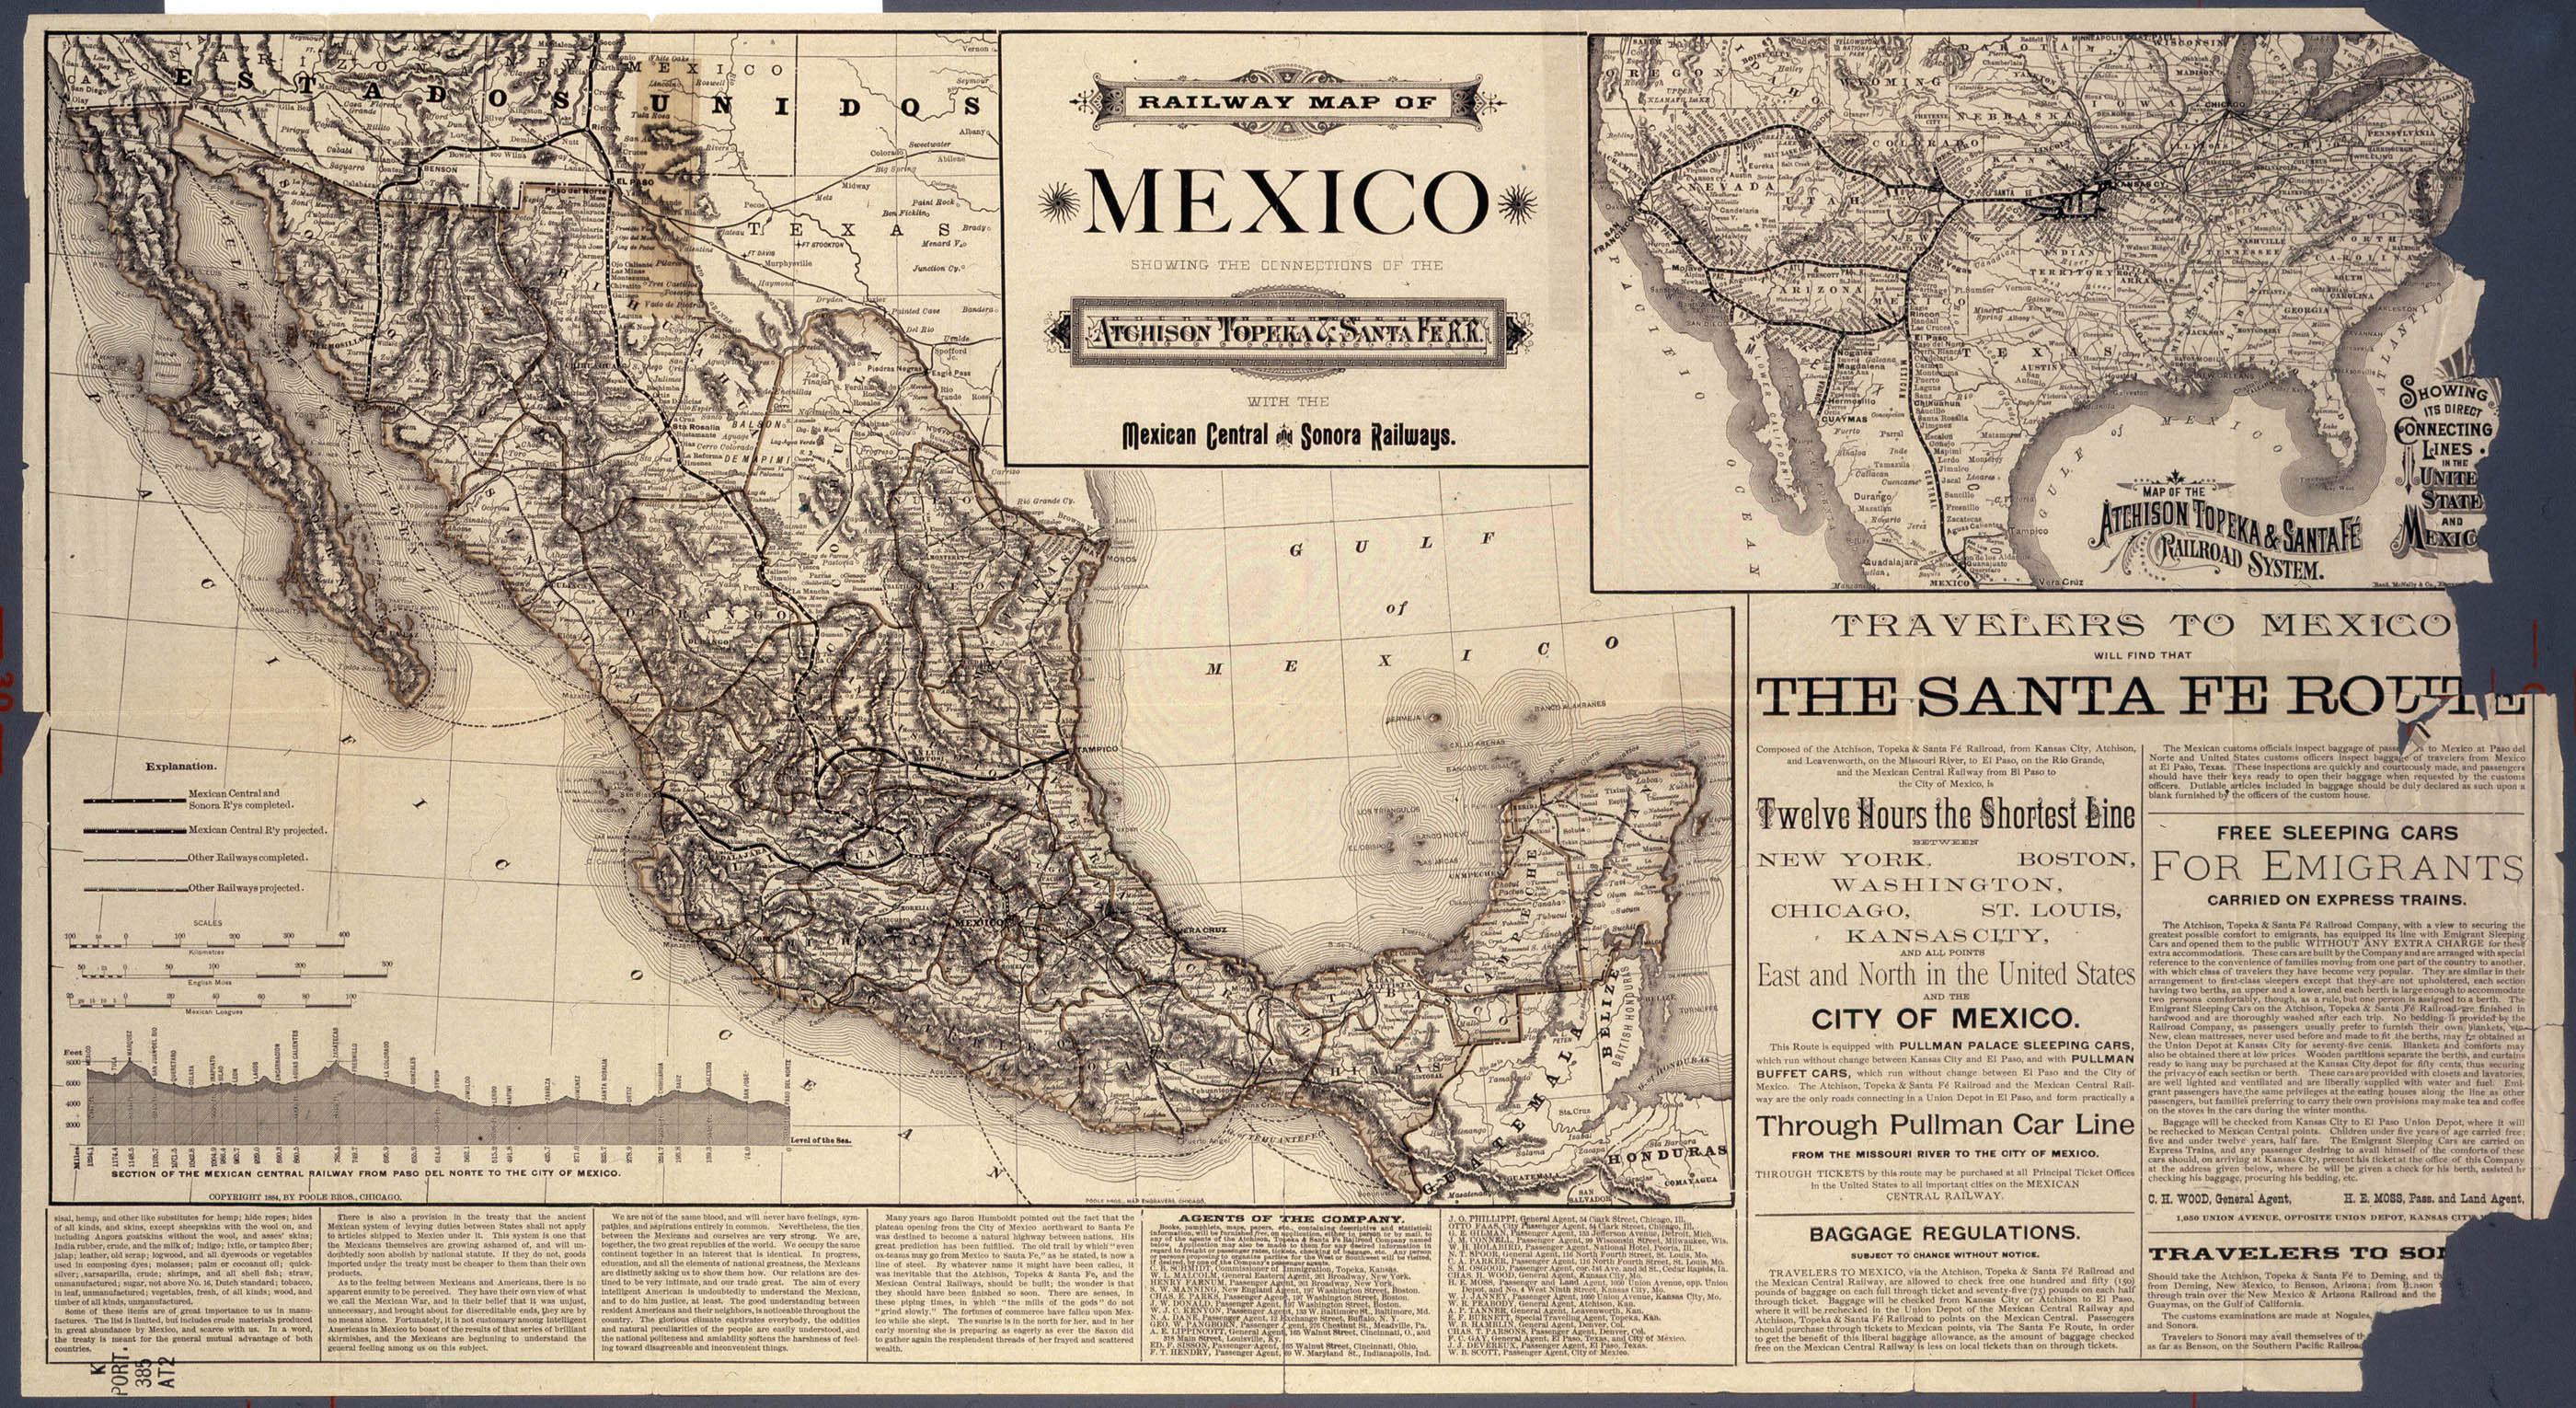 Railway Map Of Mexico Showing Connections Of The Atchison Topeka - Atchinson topeka and santa ferailroad on the us map